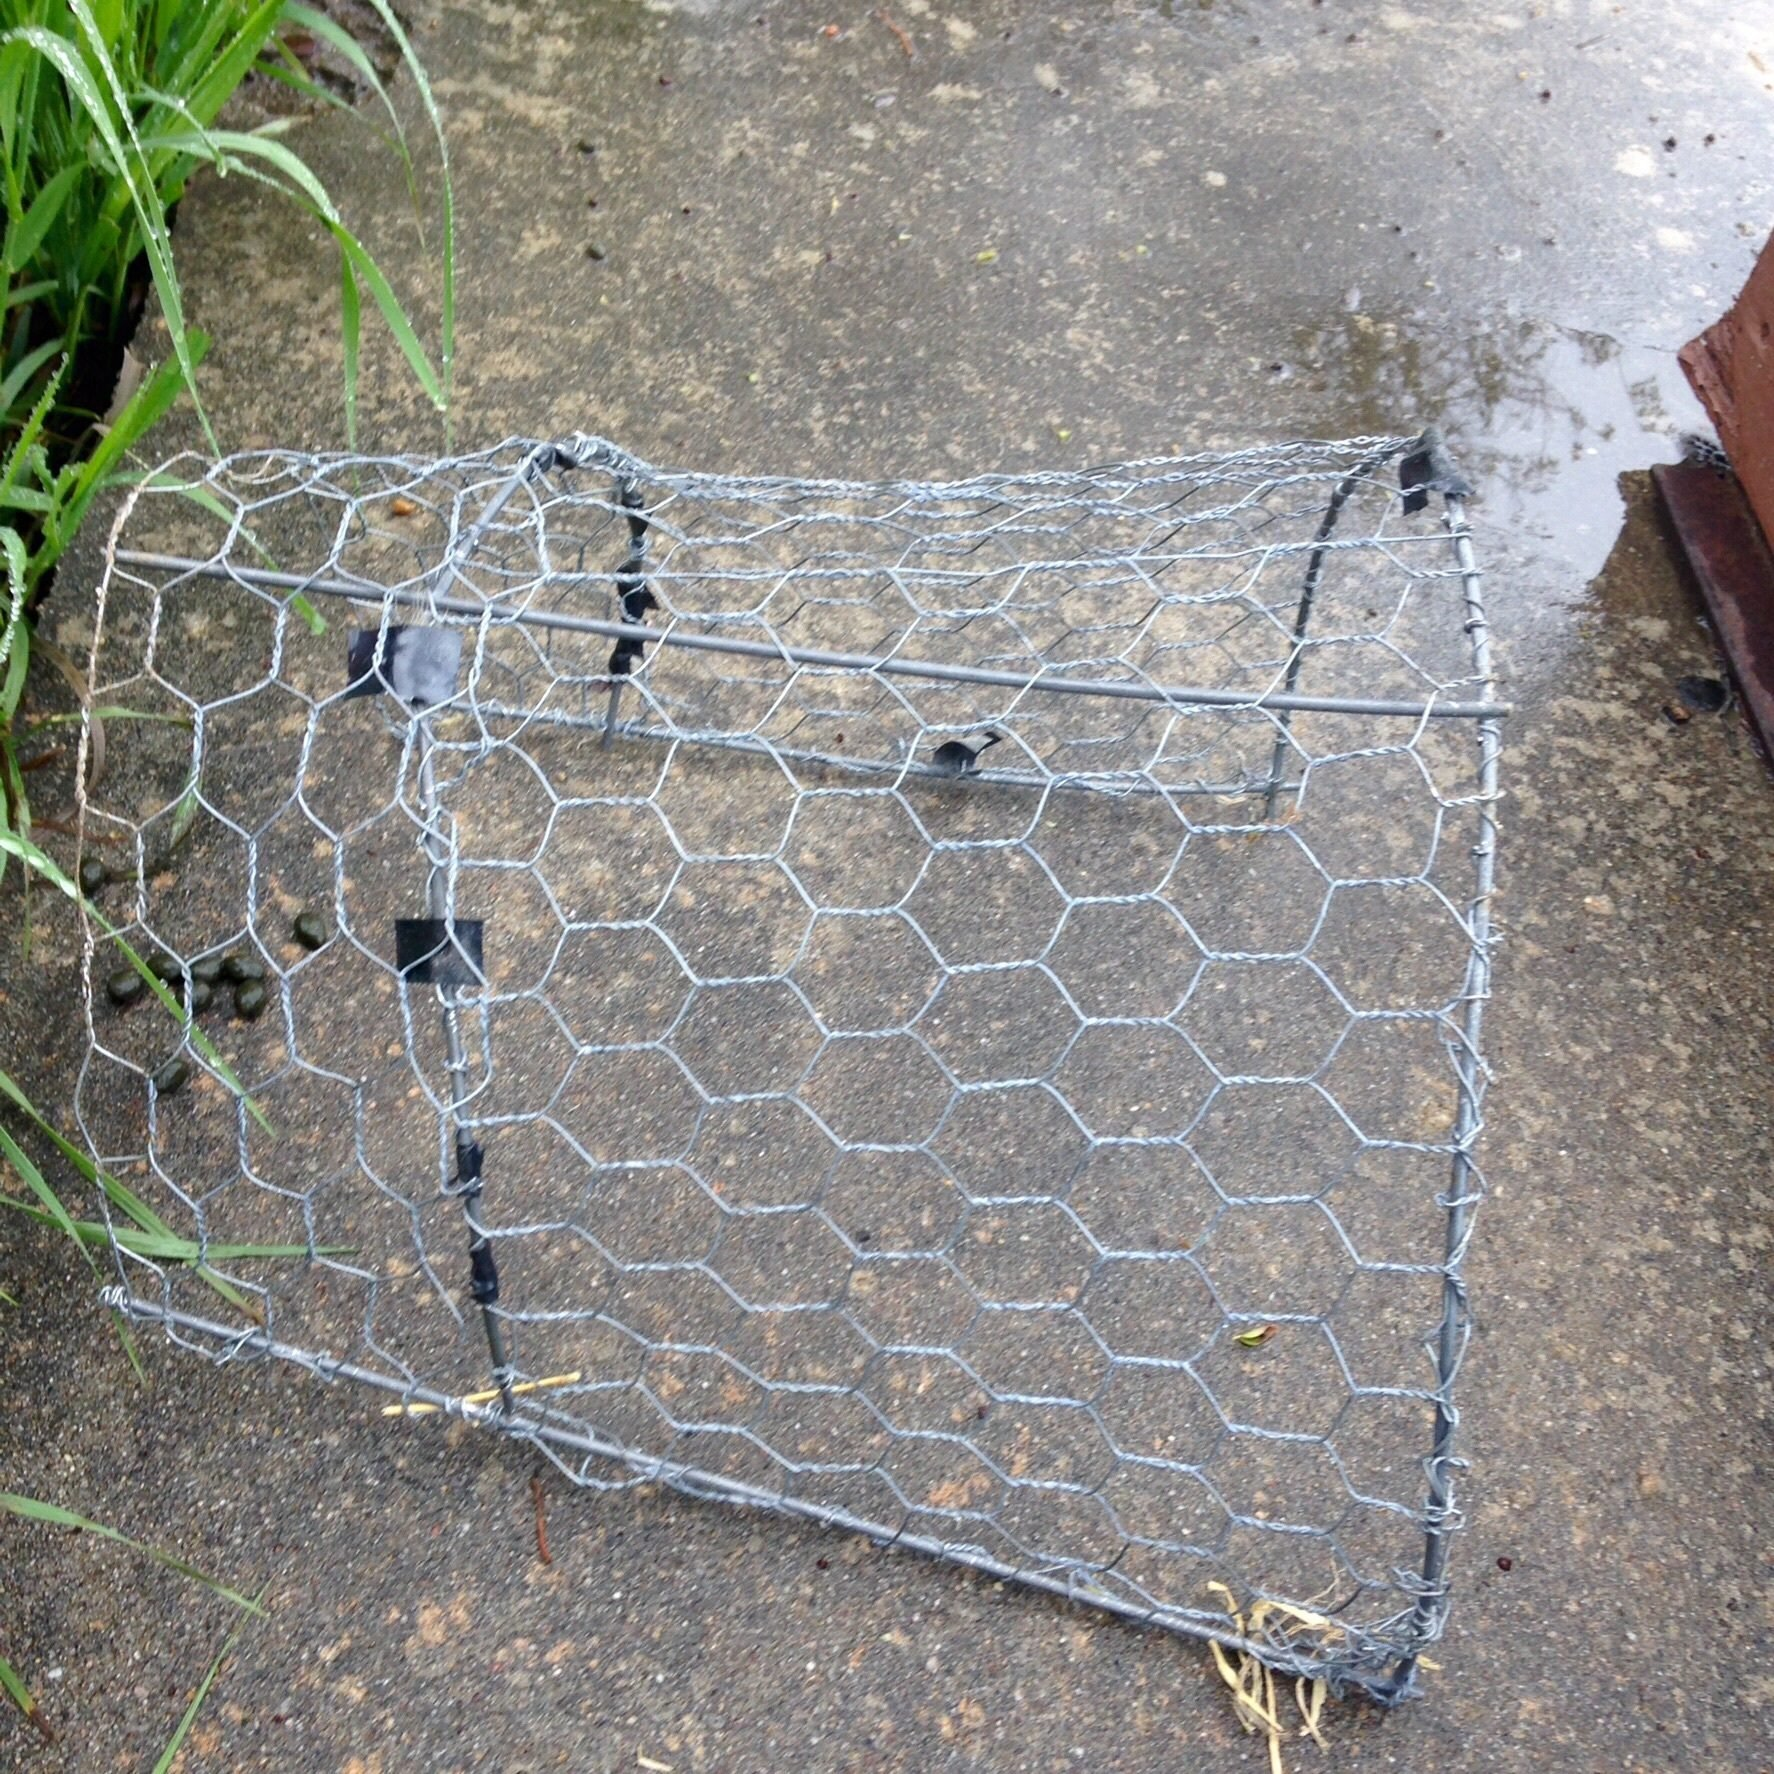 After initial run I added more chicken wire to help support the chicks running all around on the top of the brooder.